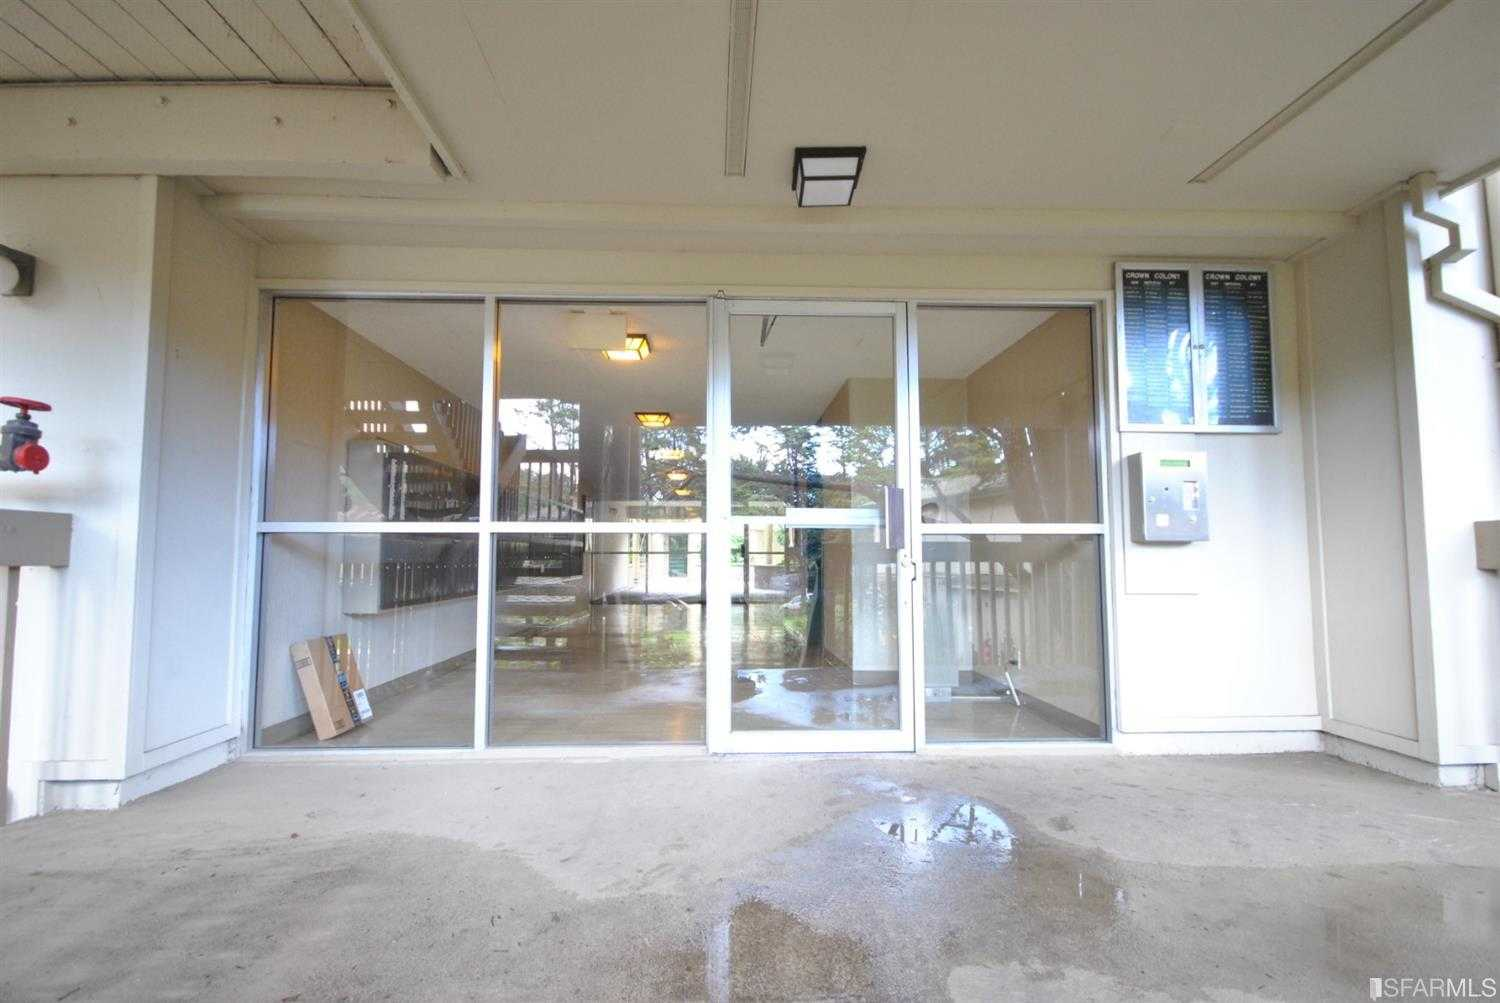 Photo of  395 Imperial Way Apt 328